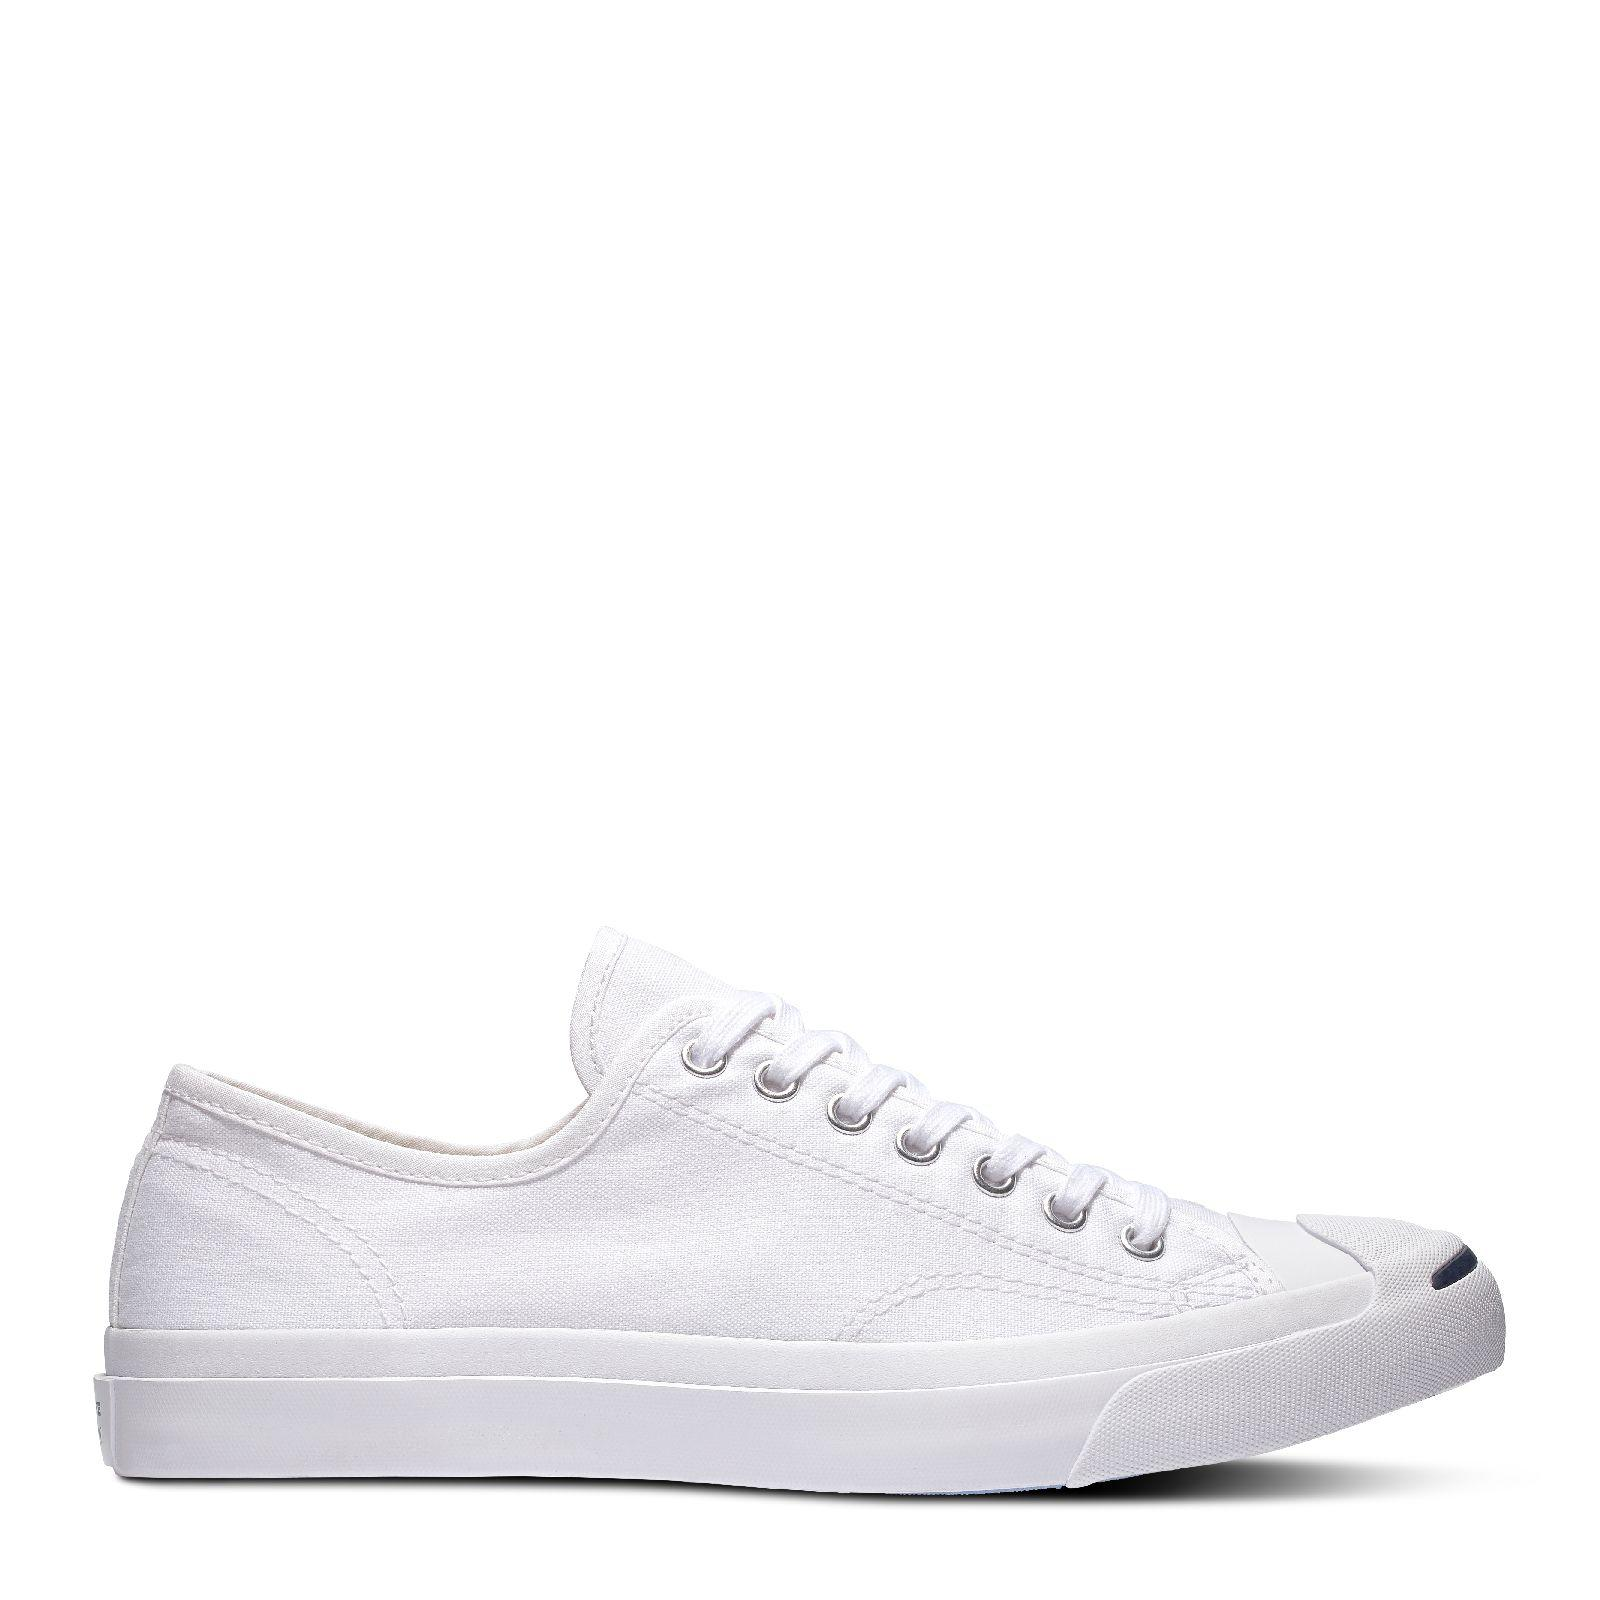 be64418f CONVERSE JACK PURCELL JACK OX - WHITE/WHITE - 1Q698